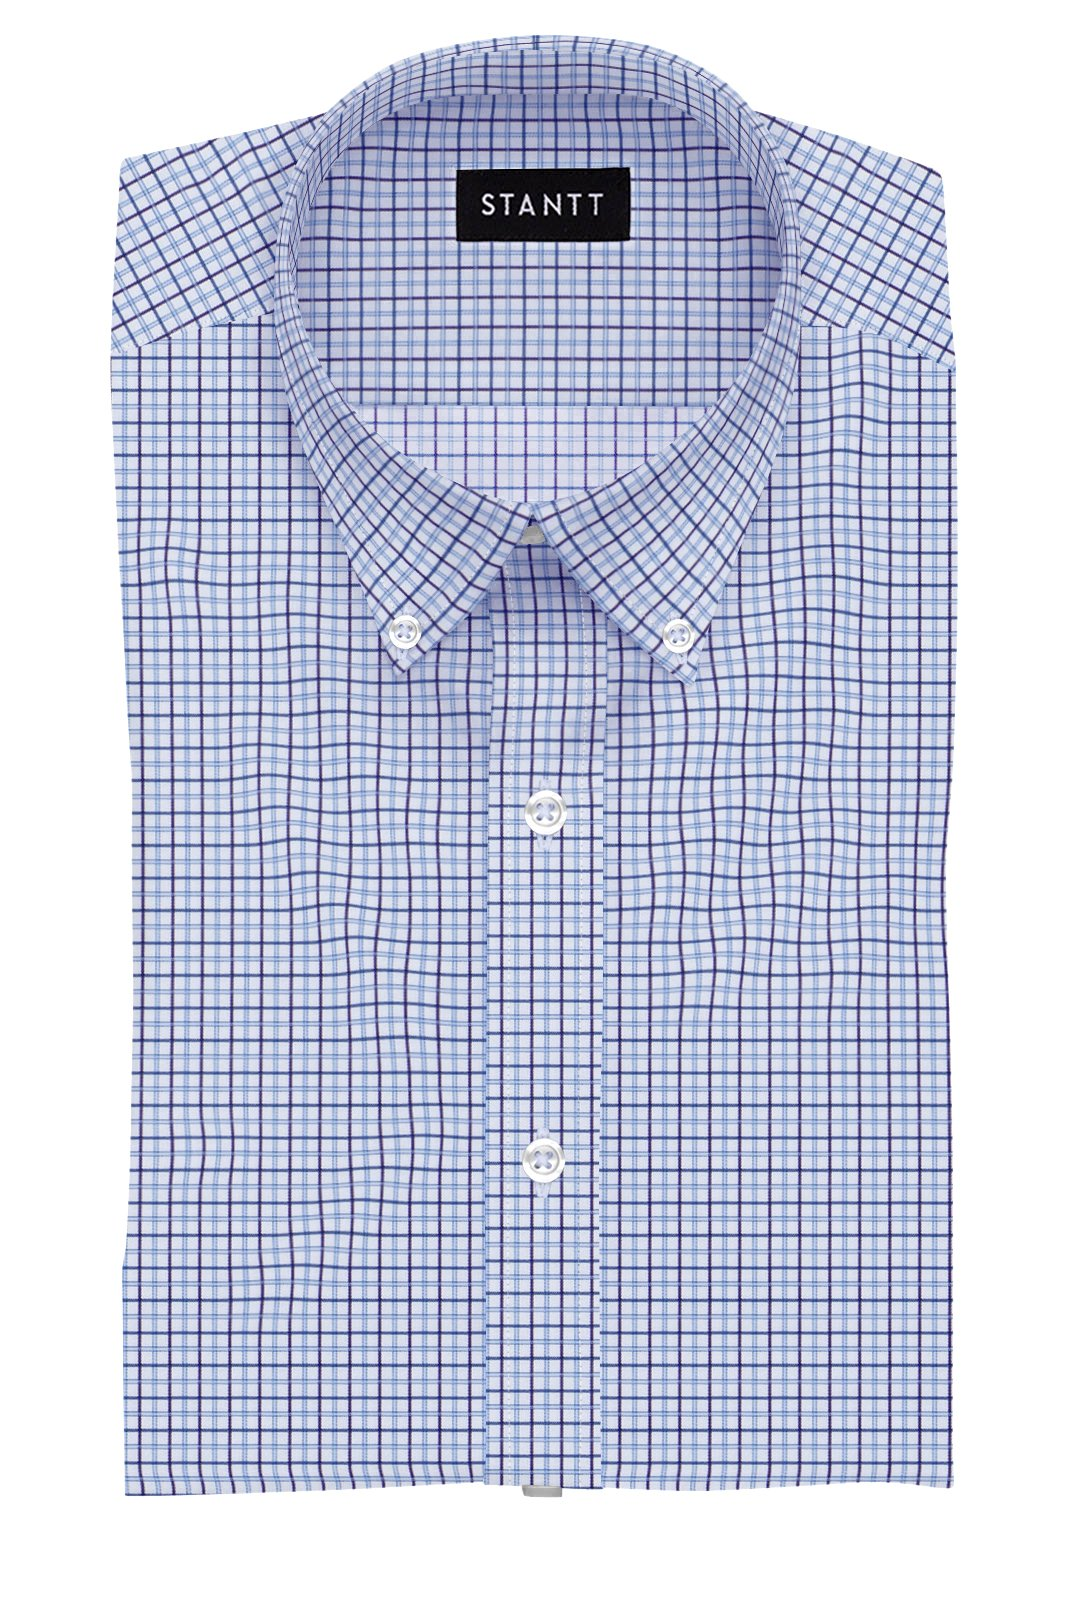 Royal Purple and Light Blue Tattersall: Button-Down Collar, Barrel Cuff